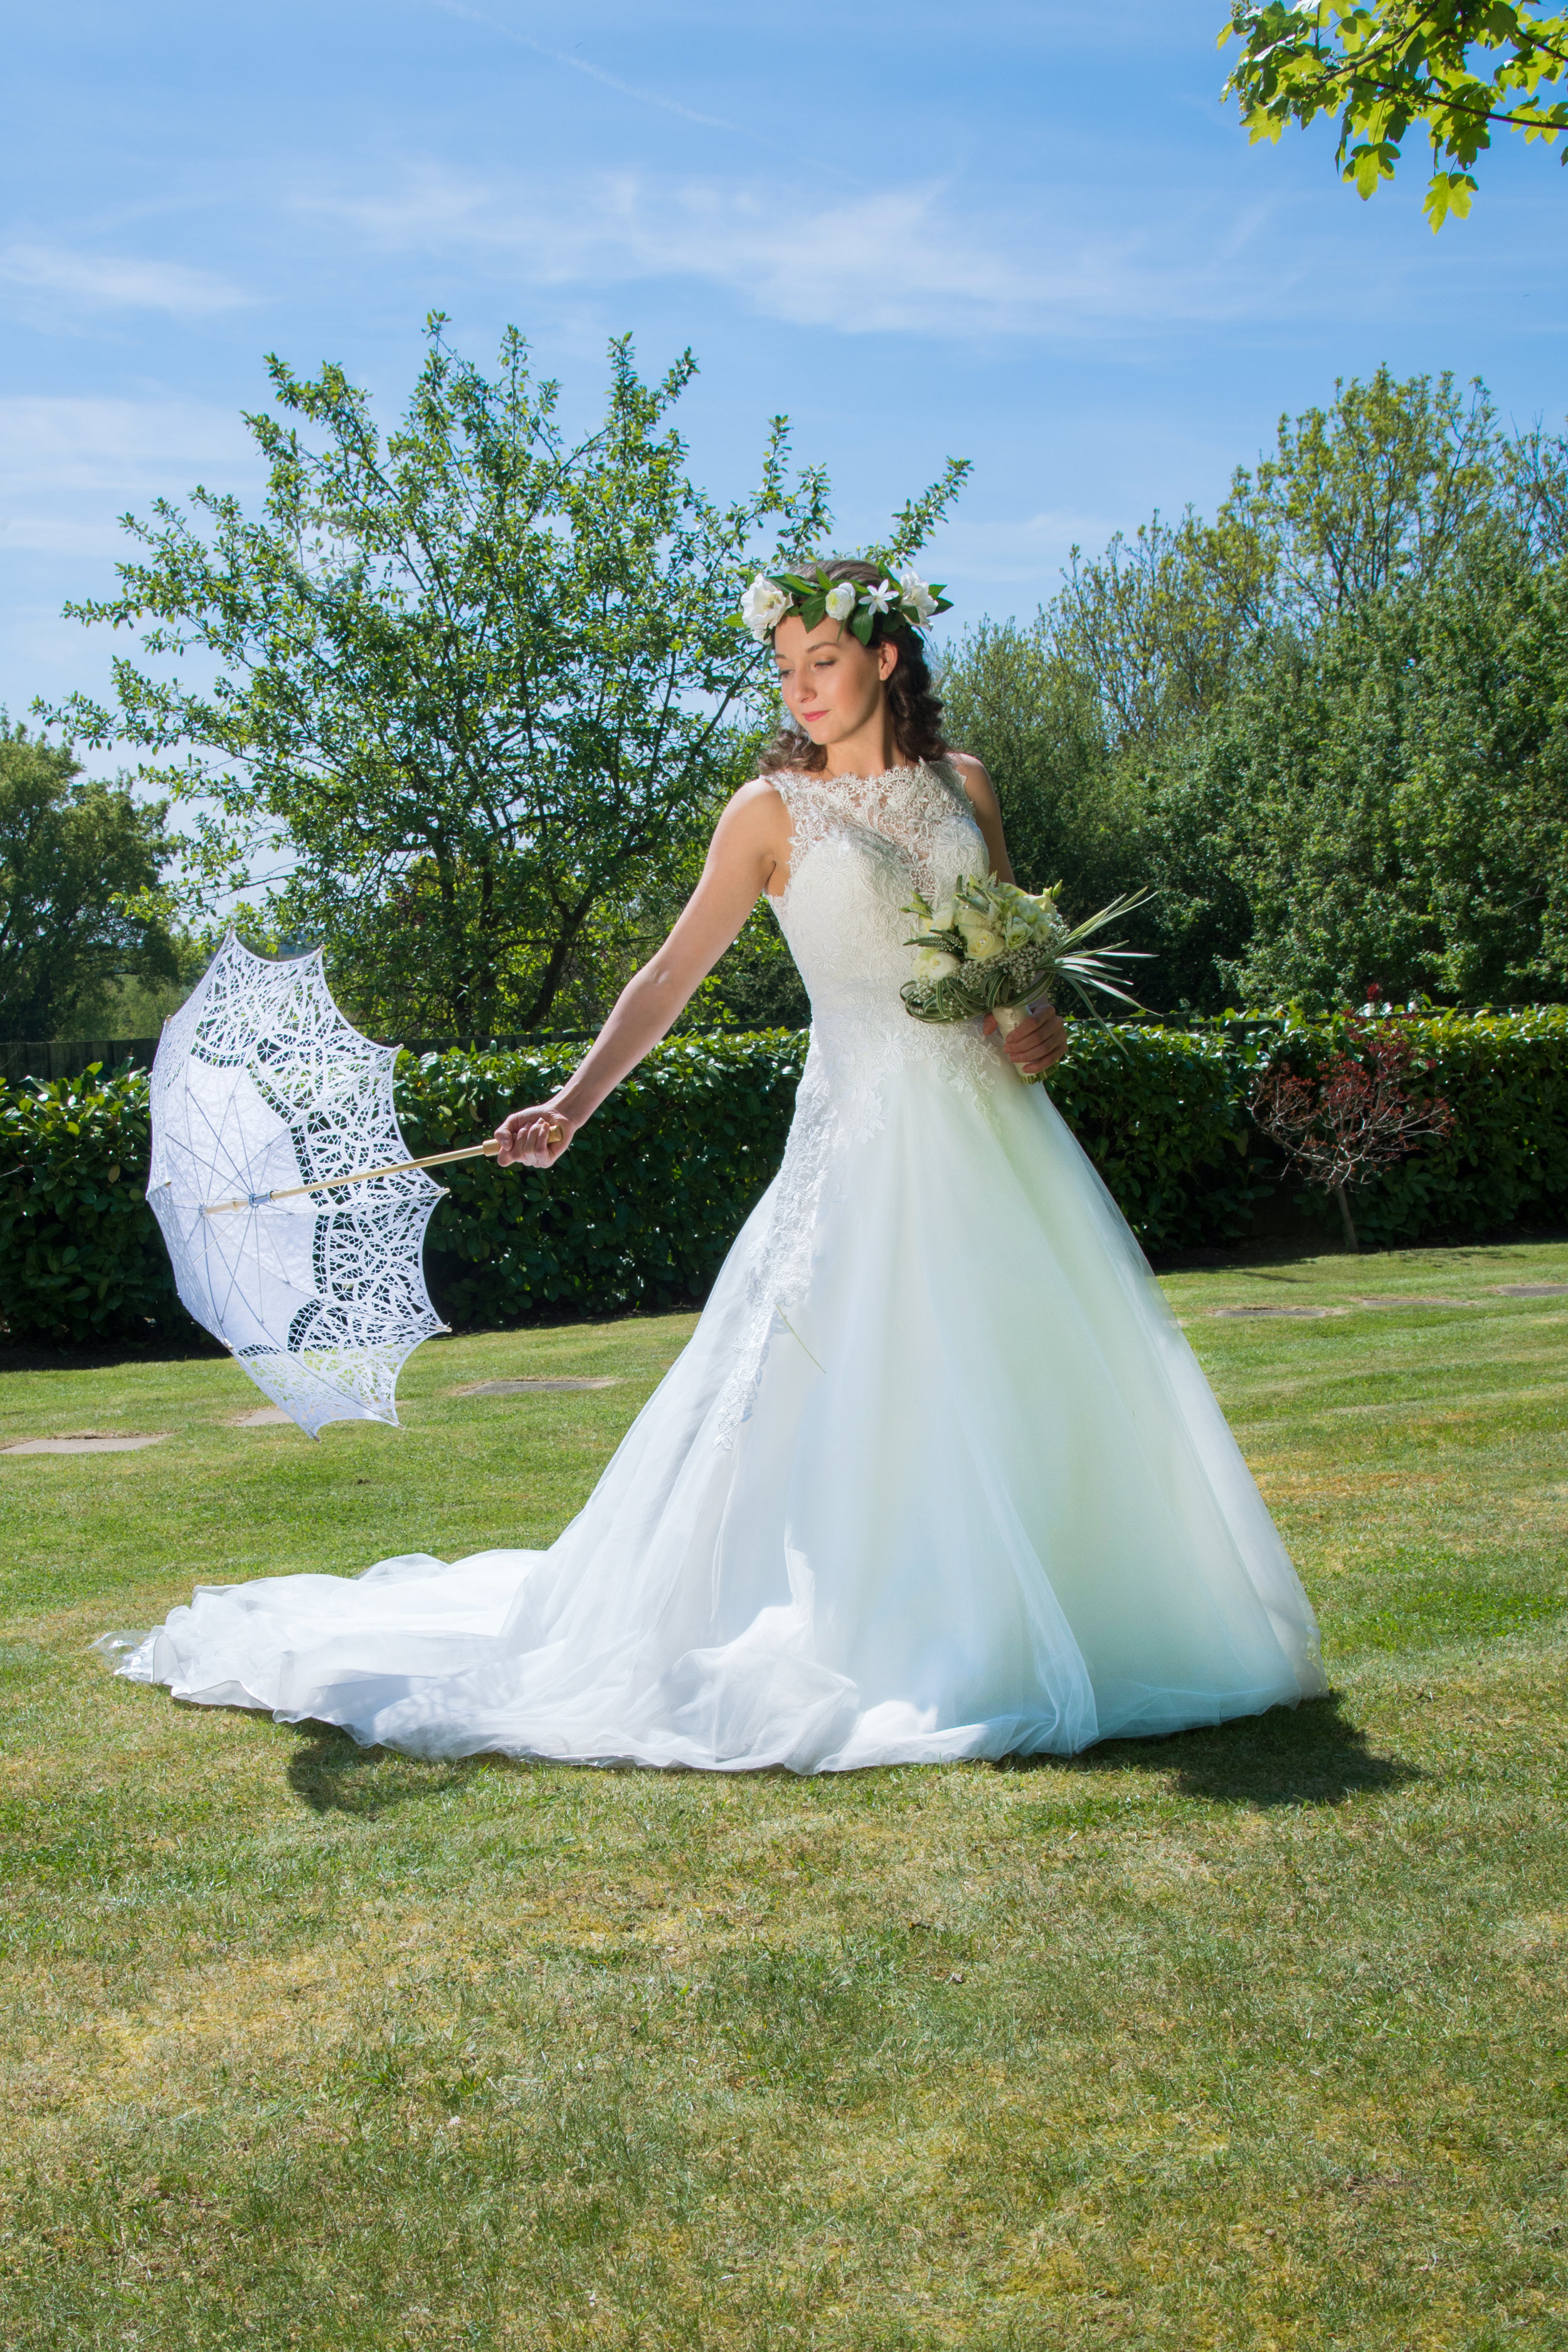 Bride with parasol Henley Golf and Country Club